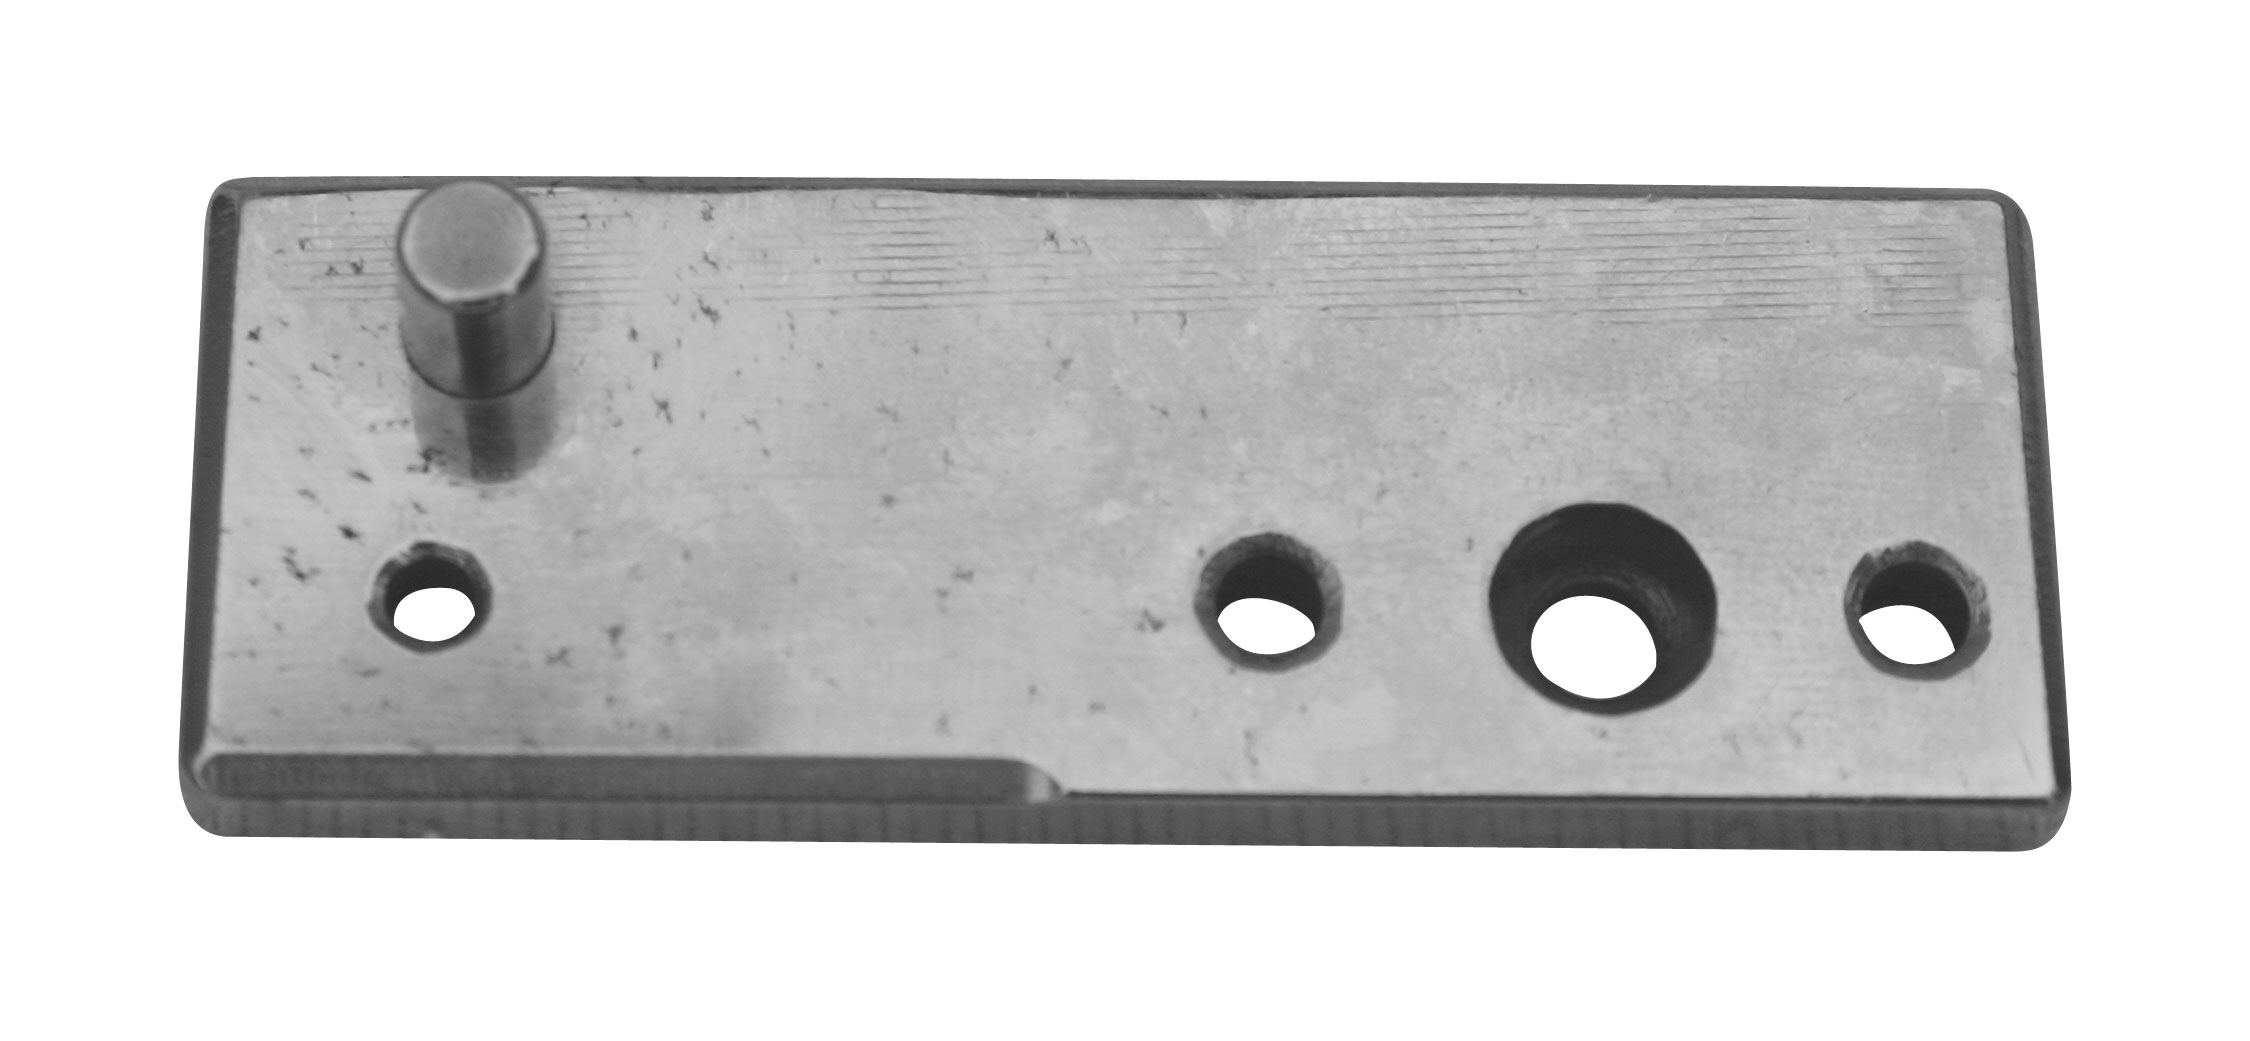 Bottom Thread  Lock Plate